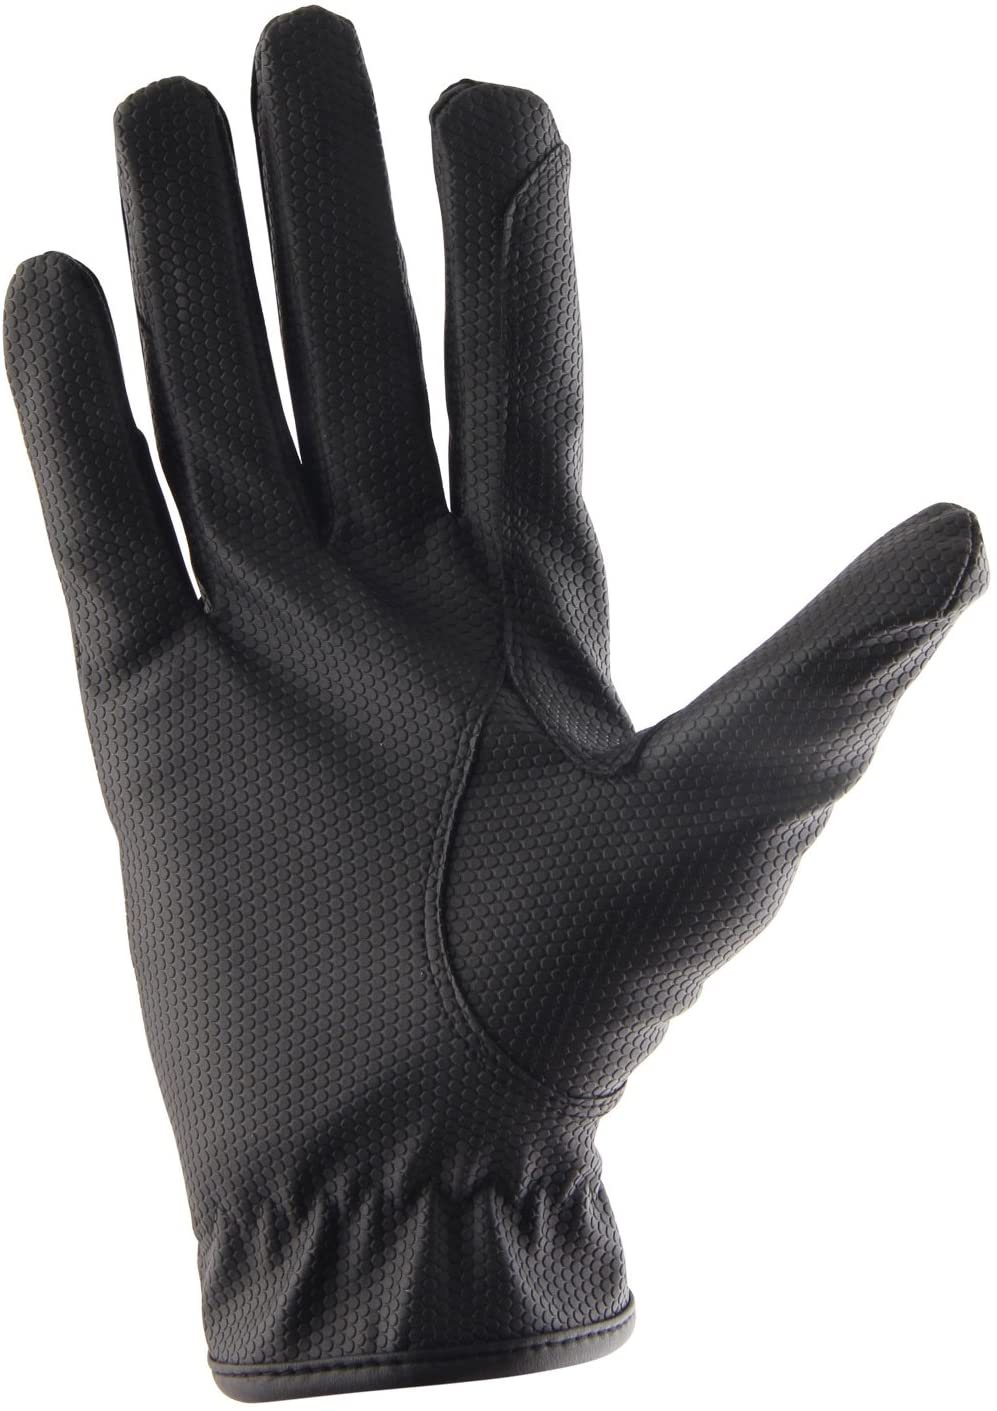 Allness Leather Adults Men Gents Horse Equestrian Polo Bike Bicycle Riding Black Gloves